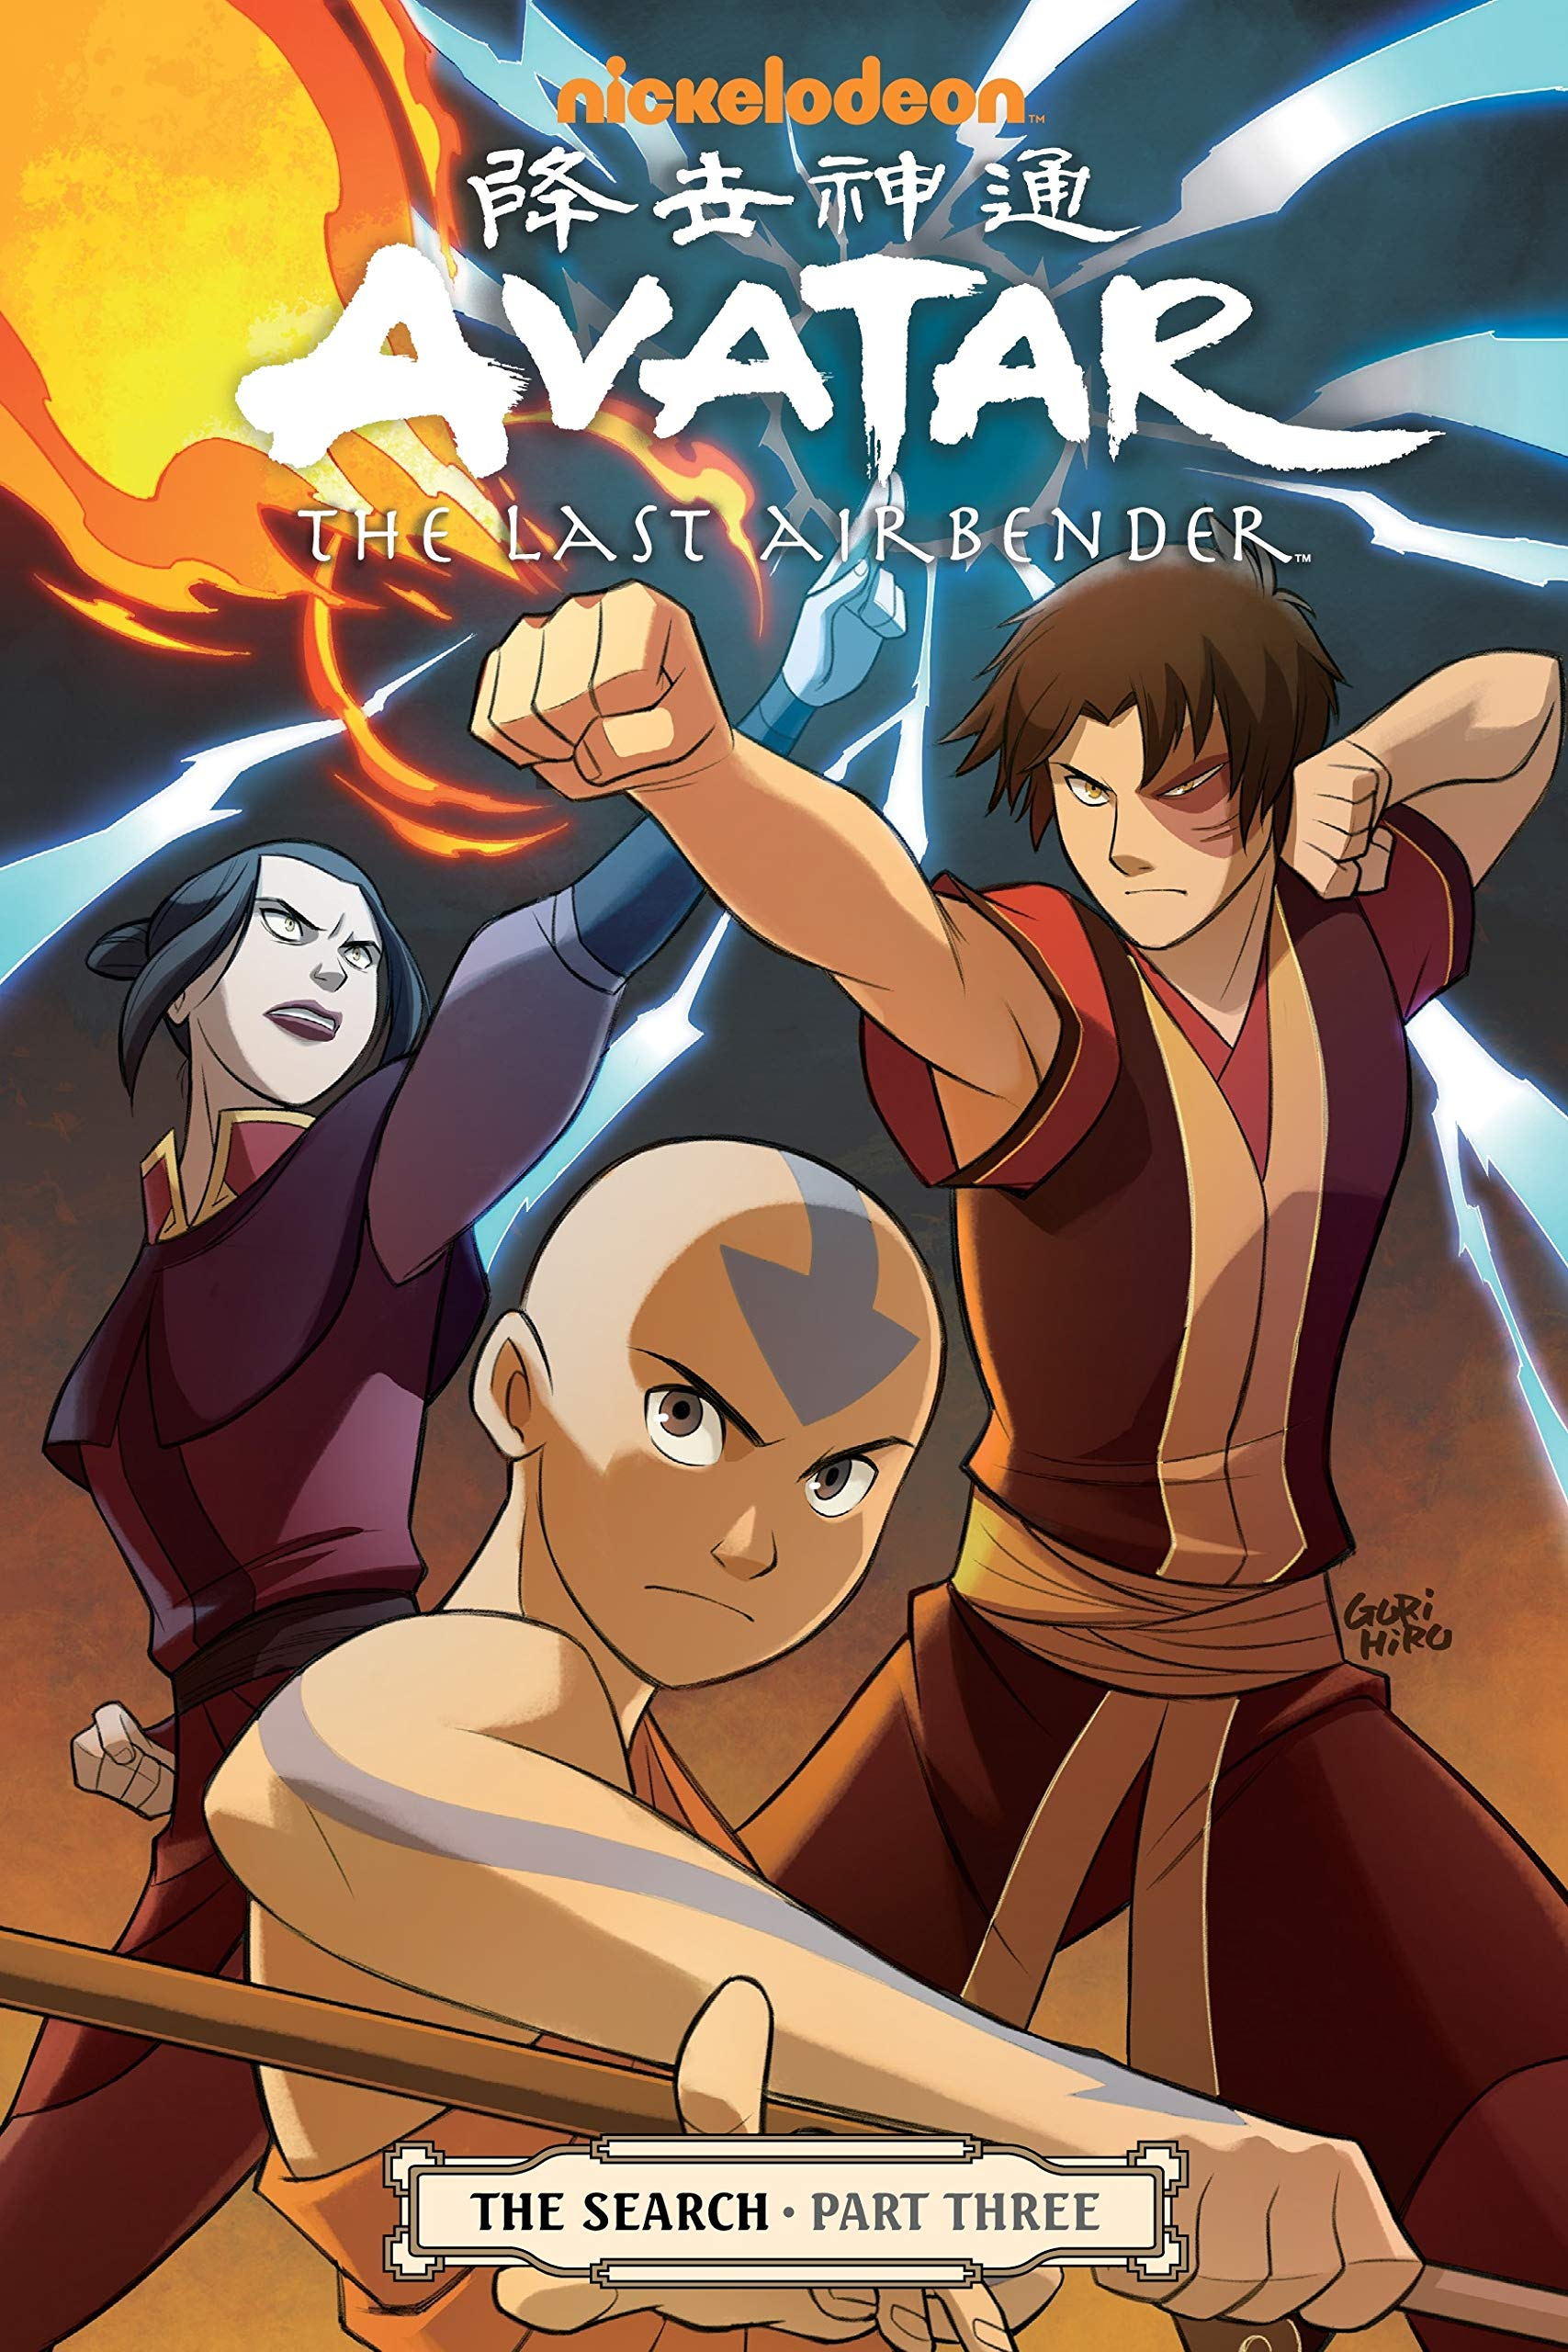 Avatar: The Last Airbender - The Search Part 3: Yang, Gene Luen, Various:  Amazon.com.mx: Libros